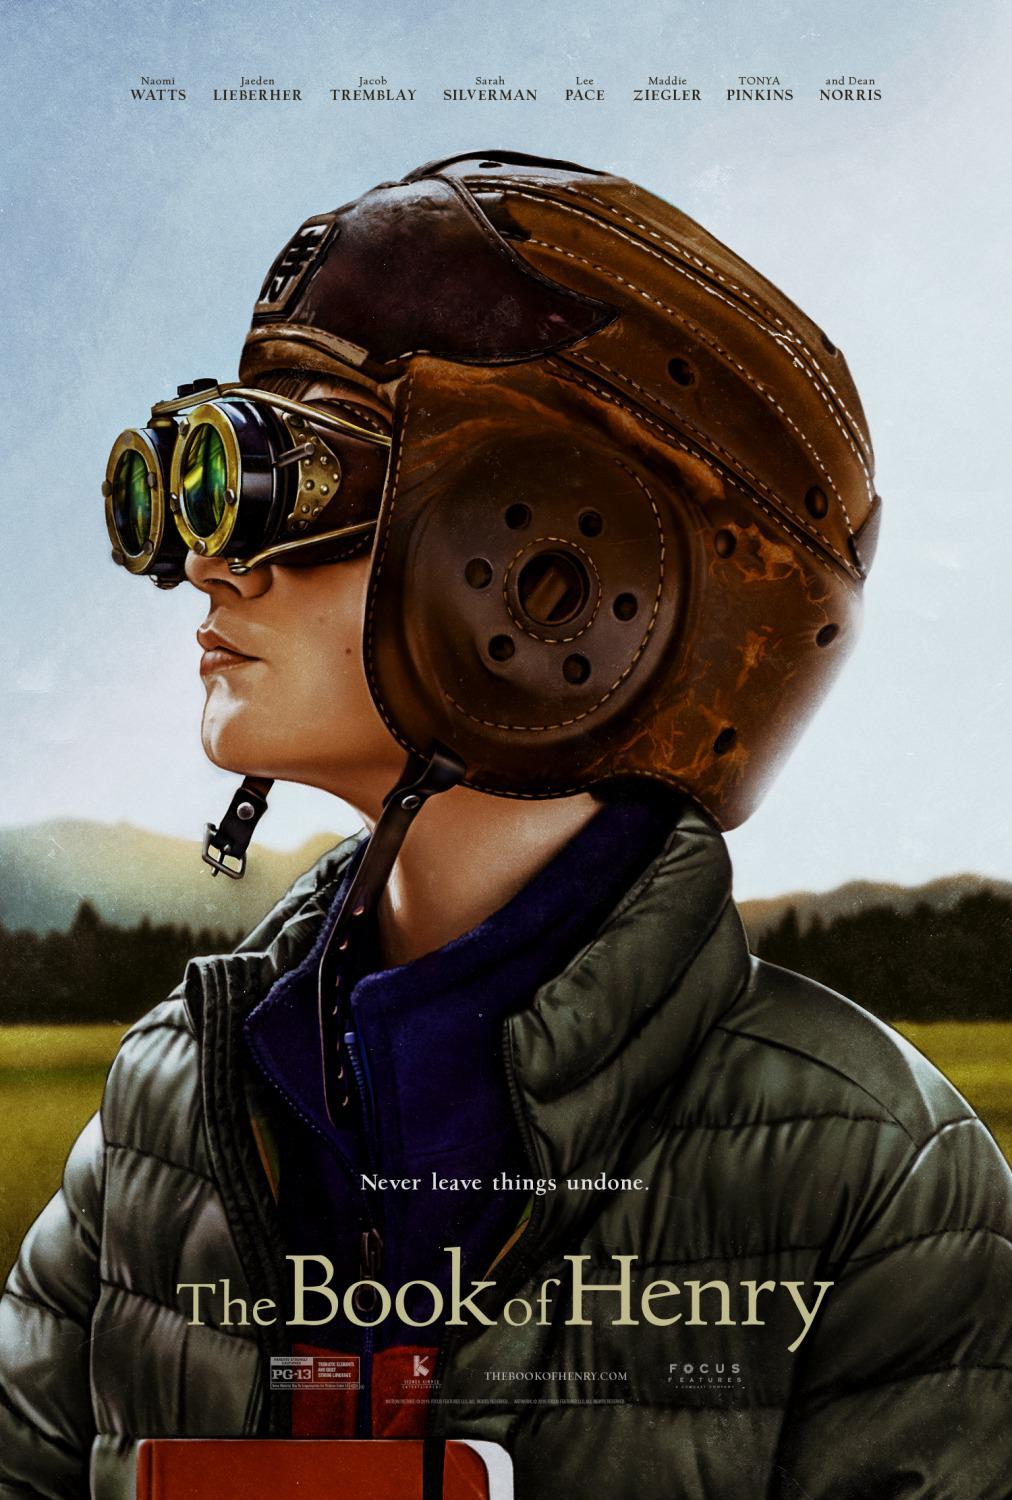 The Book of Henry - Il Libro di Henry - never leave things undone - poster